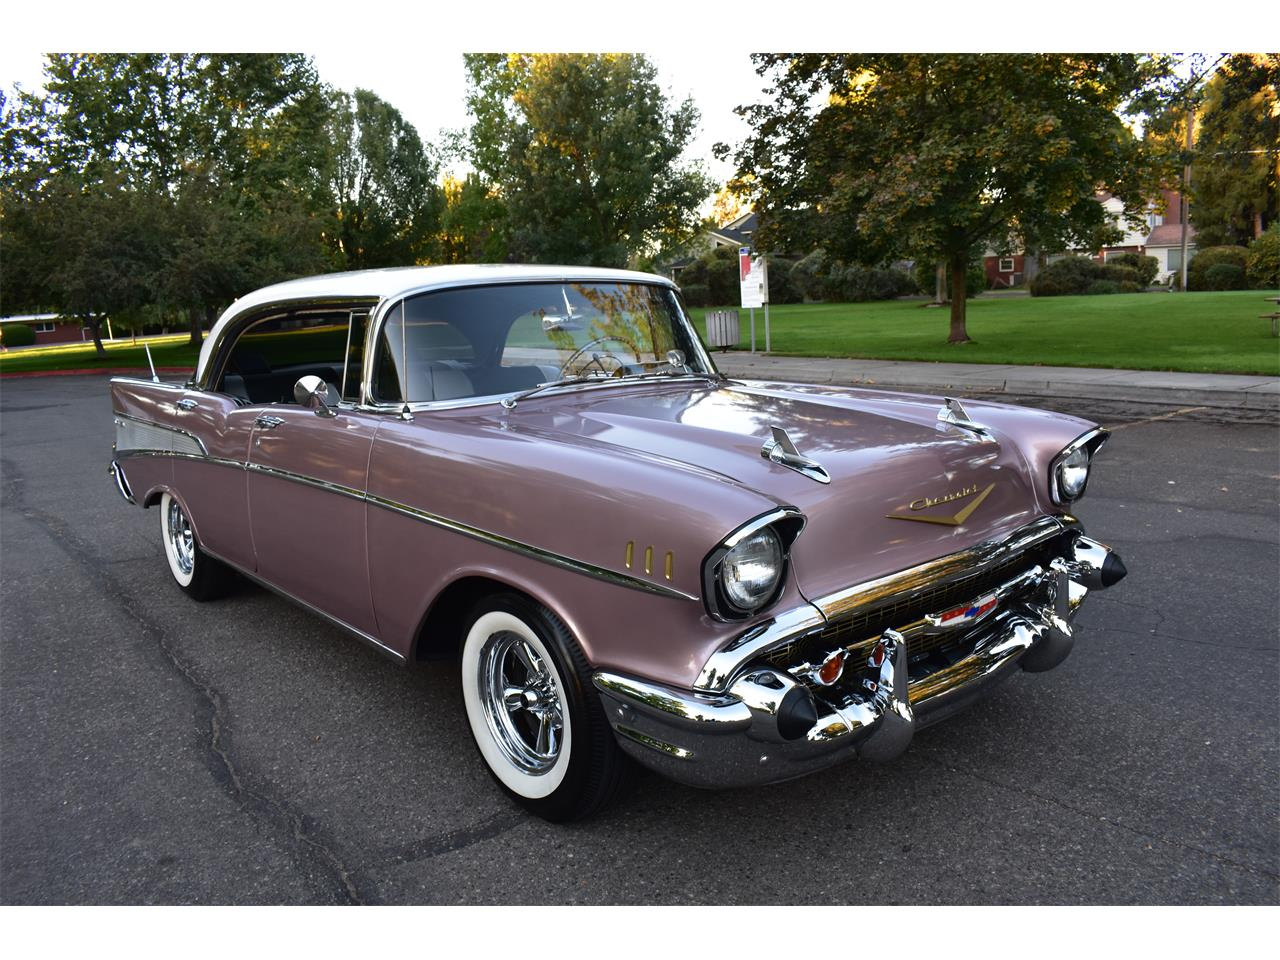 1957 Chevy Bel Air For Sale >> 1957 Chevrolet Bel Air For Sale Classiccars Com Cc 1151772